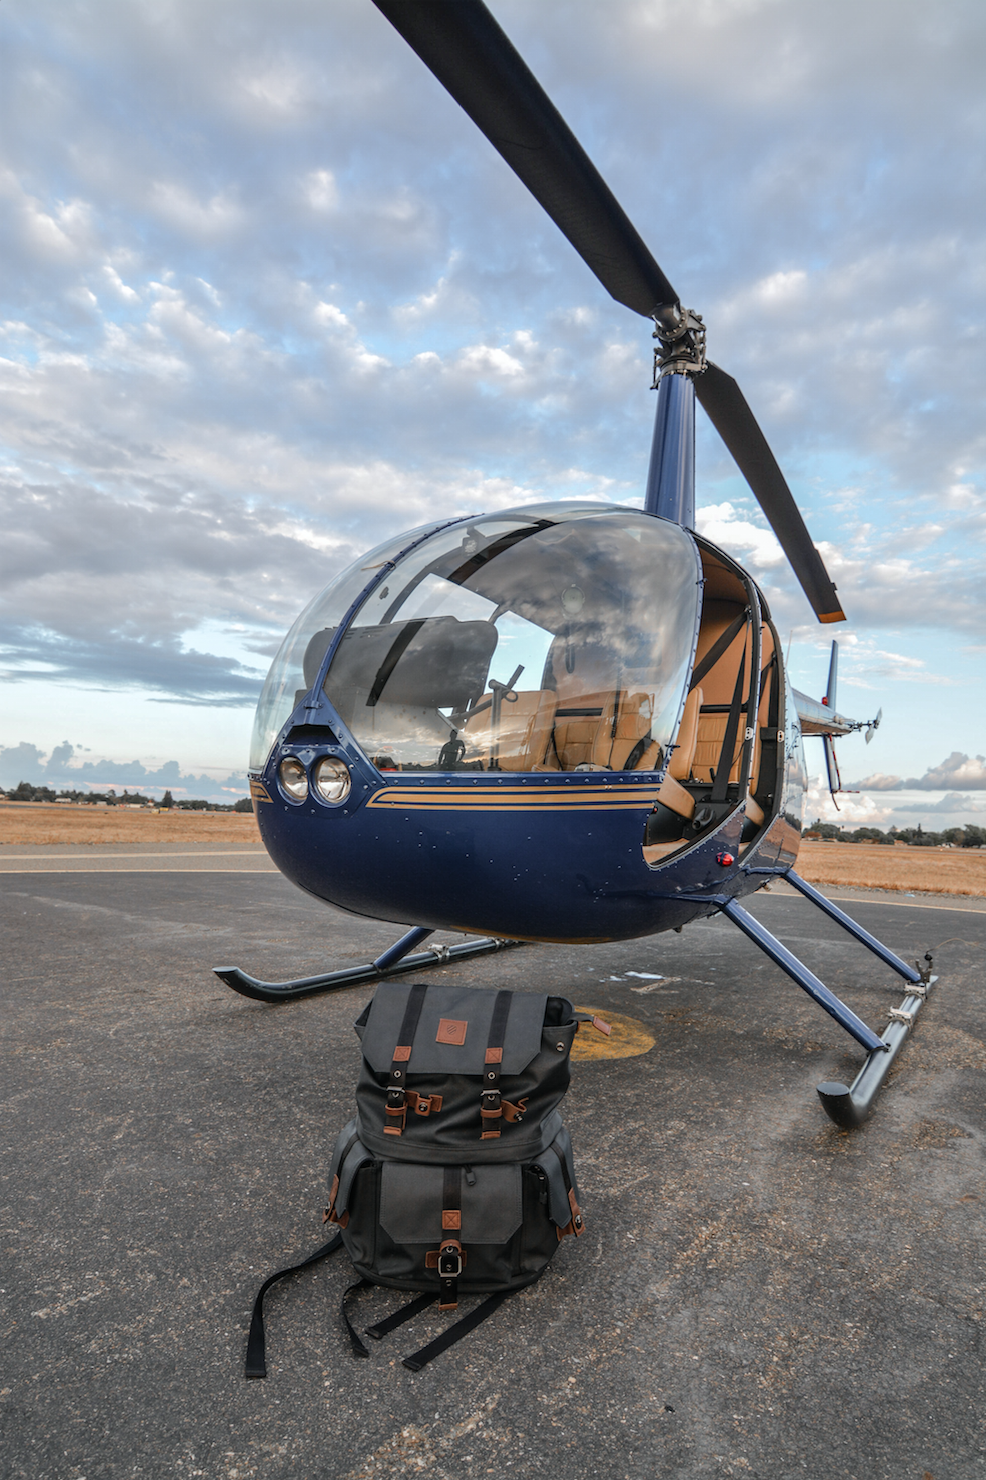 The Robinson r44 Helicopter along with my  Langly  camera bag that I carry everywhere with me.